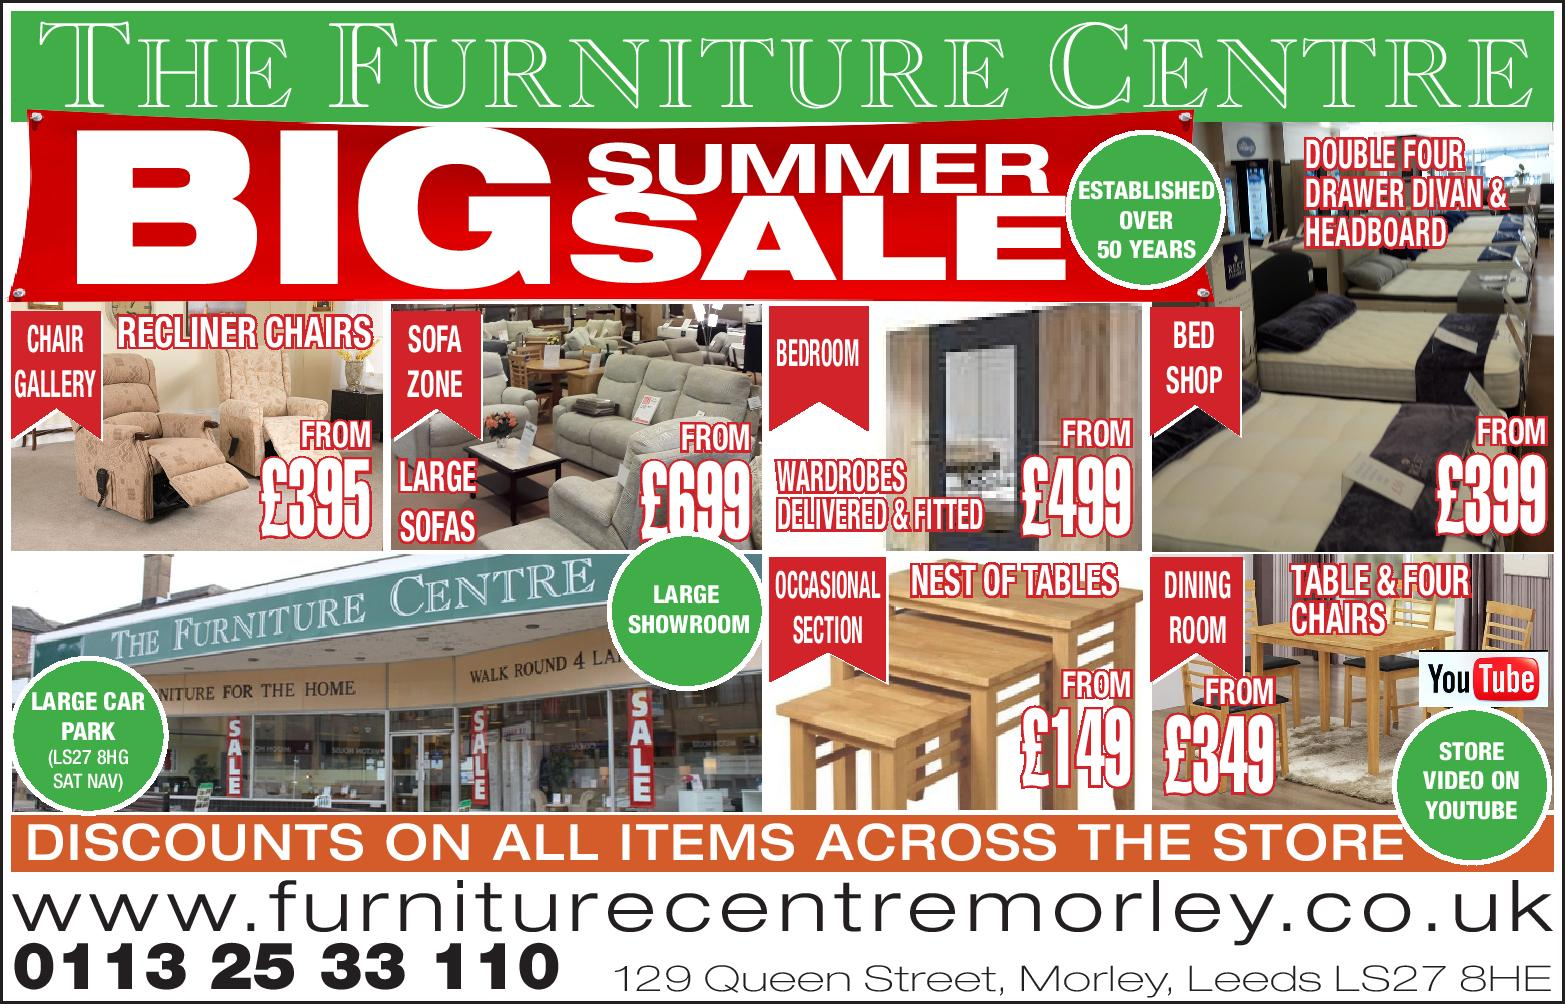 Dining Room Furniture Stores Leeds Find this Pin and more on